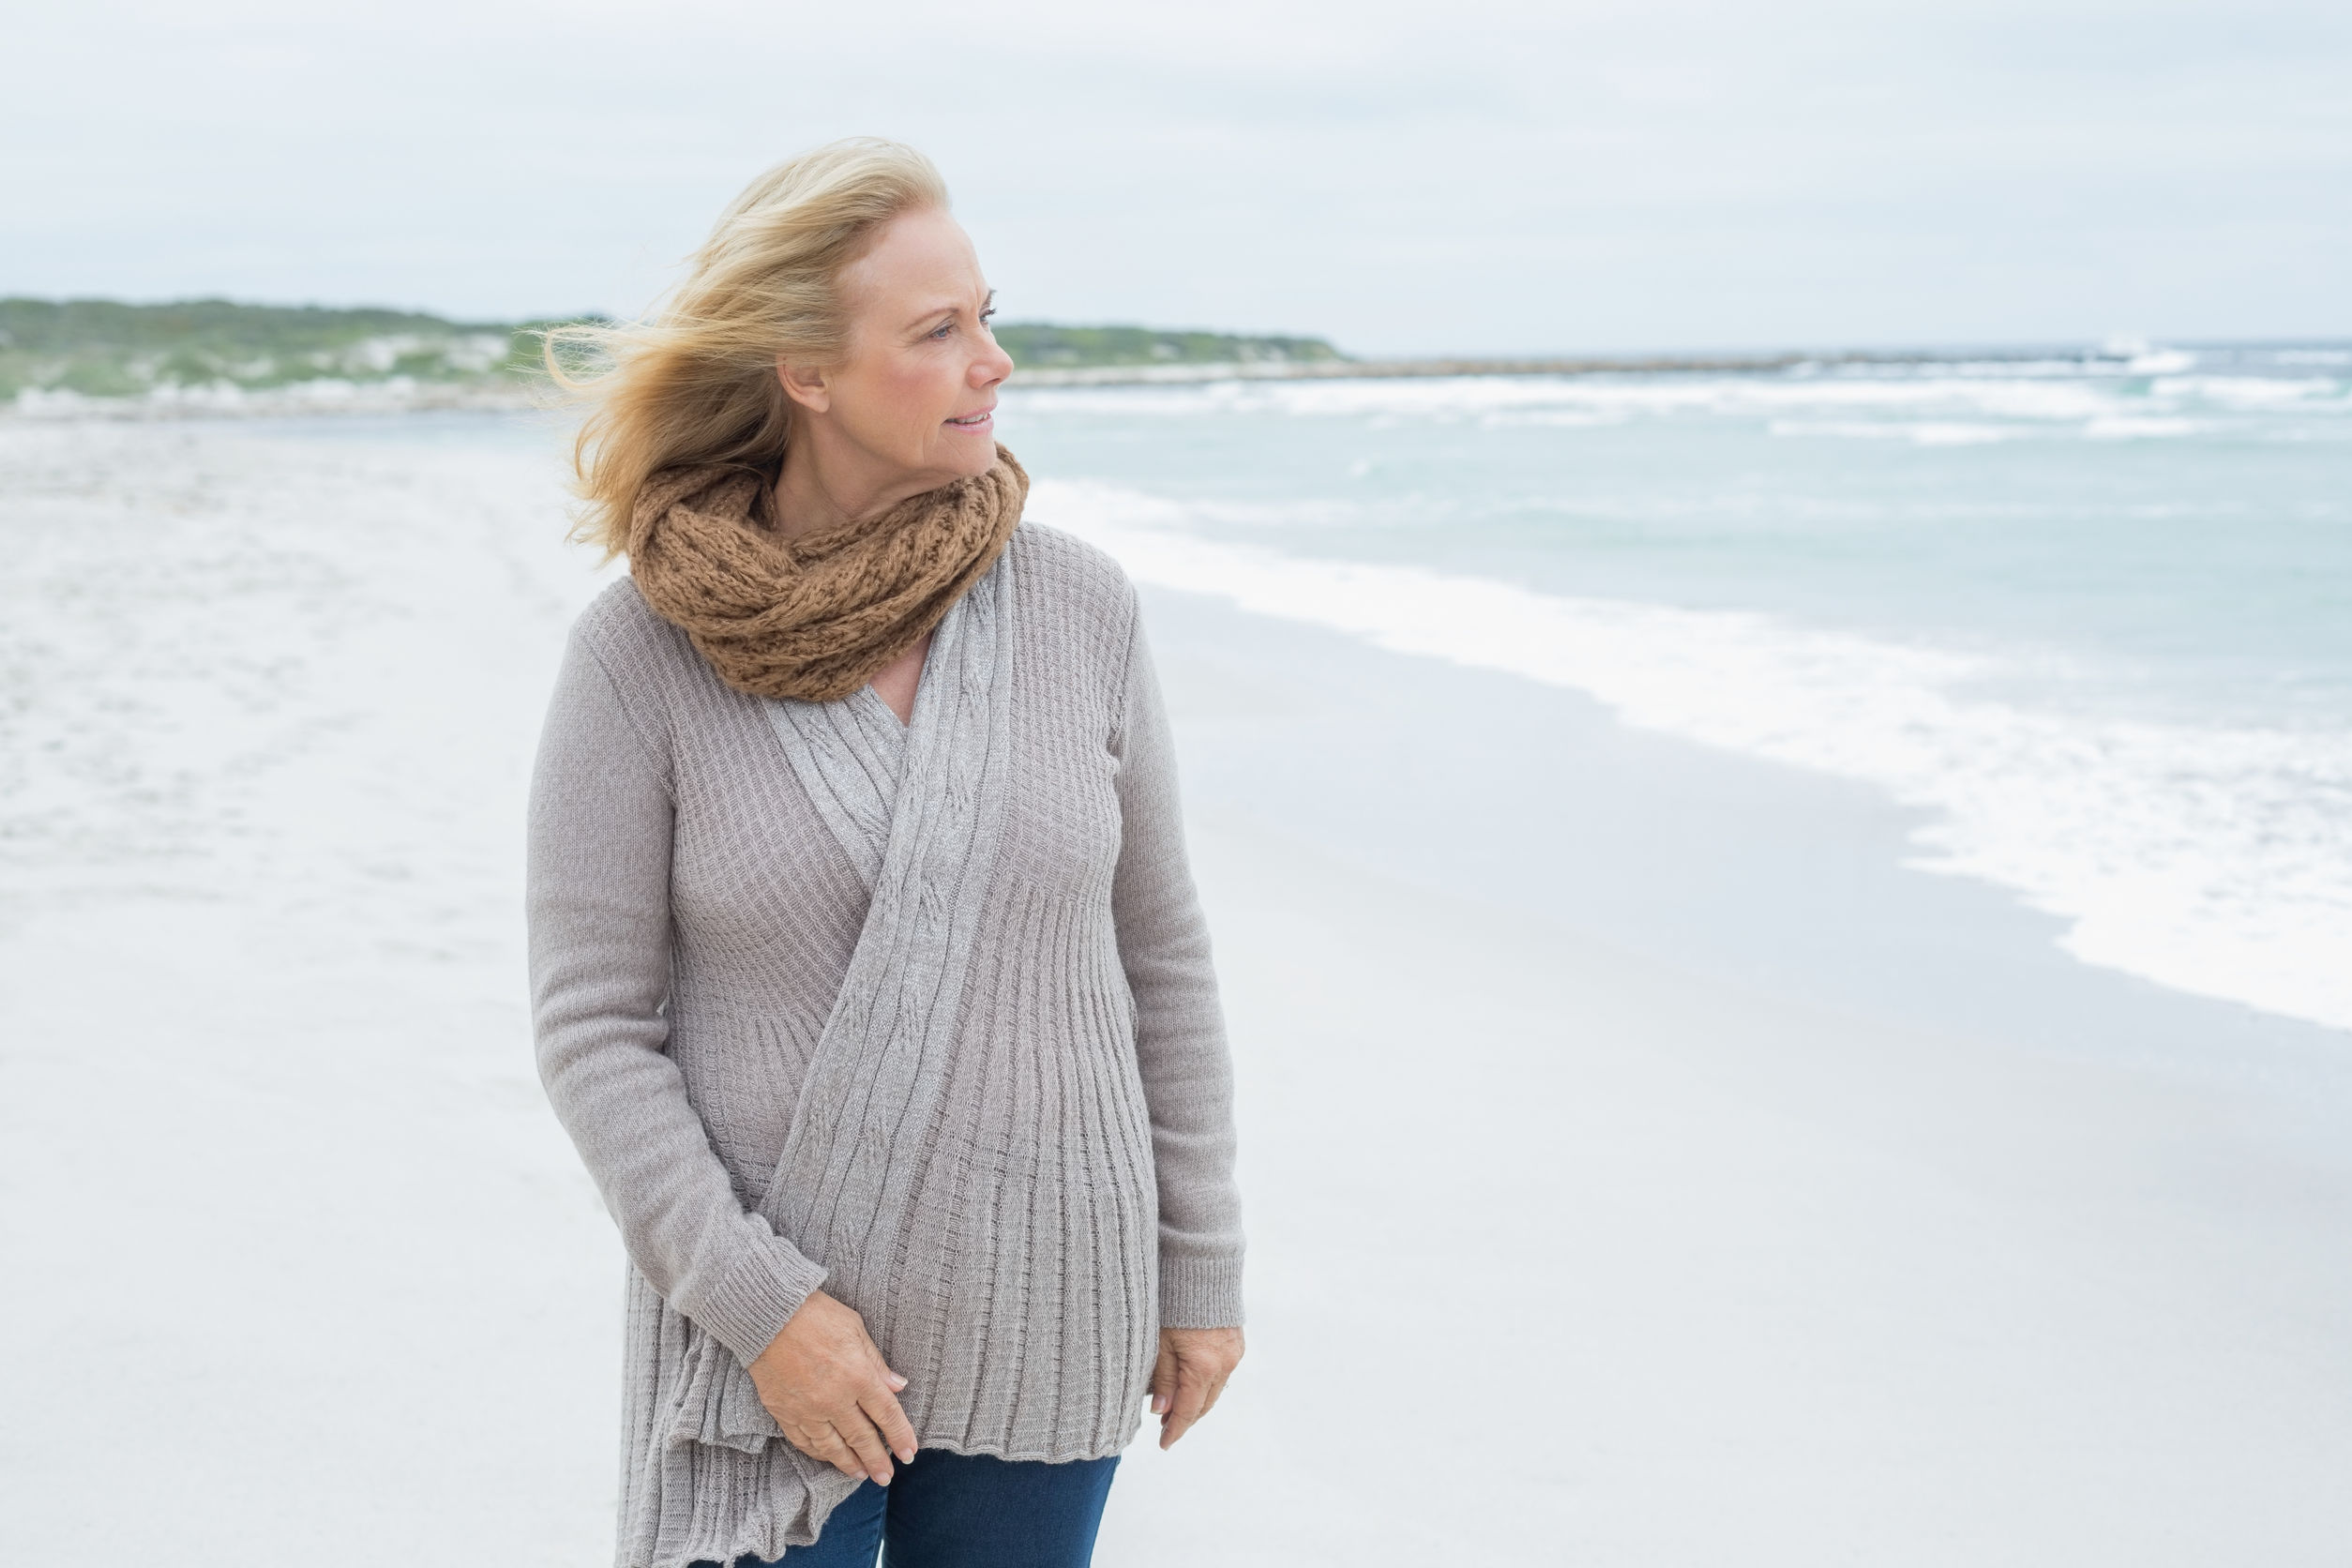 Contemplative senior woman at the ocean